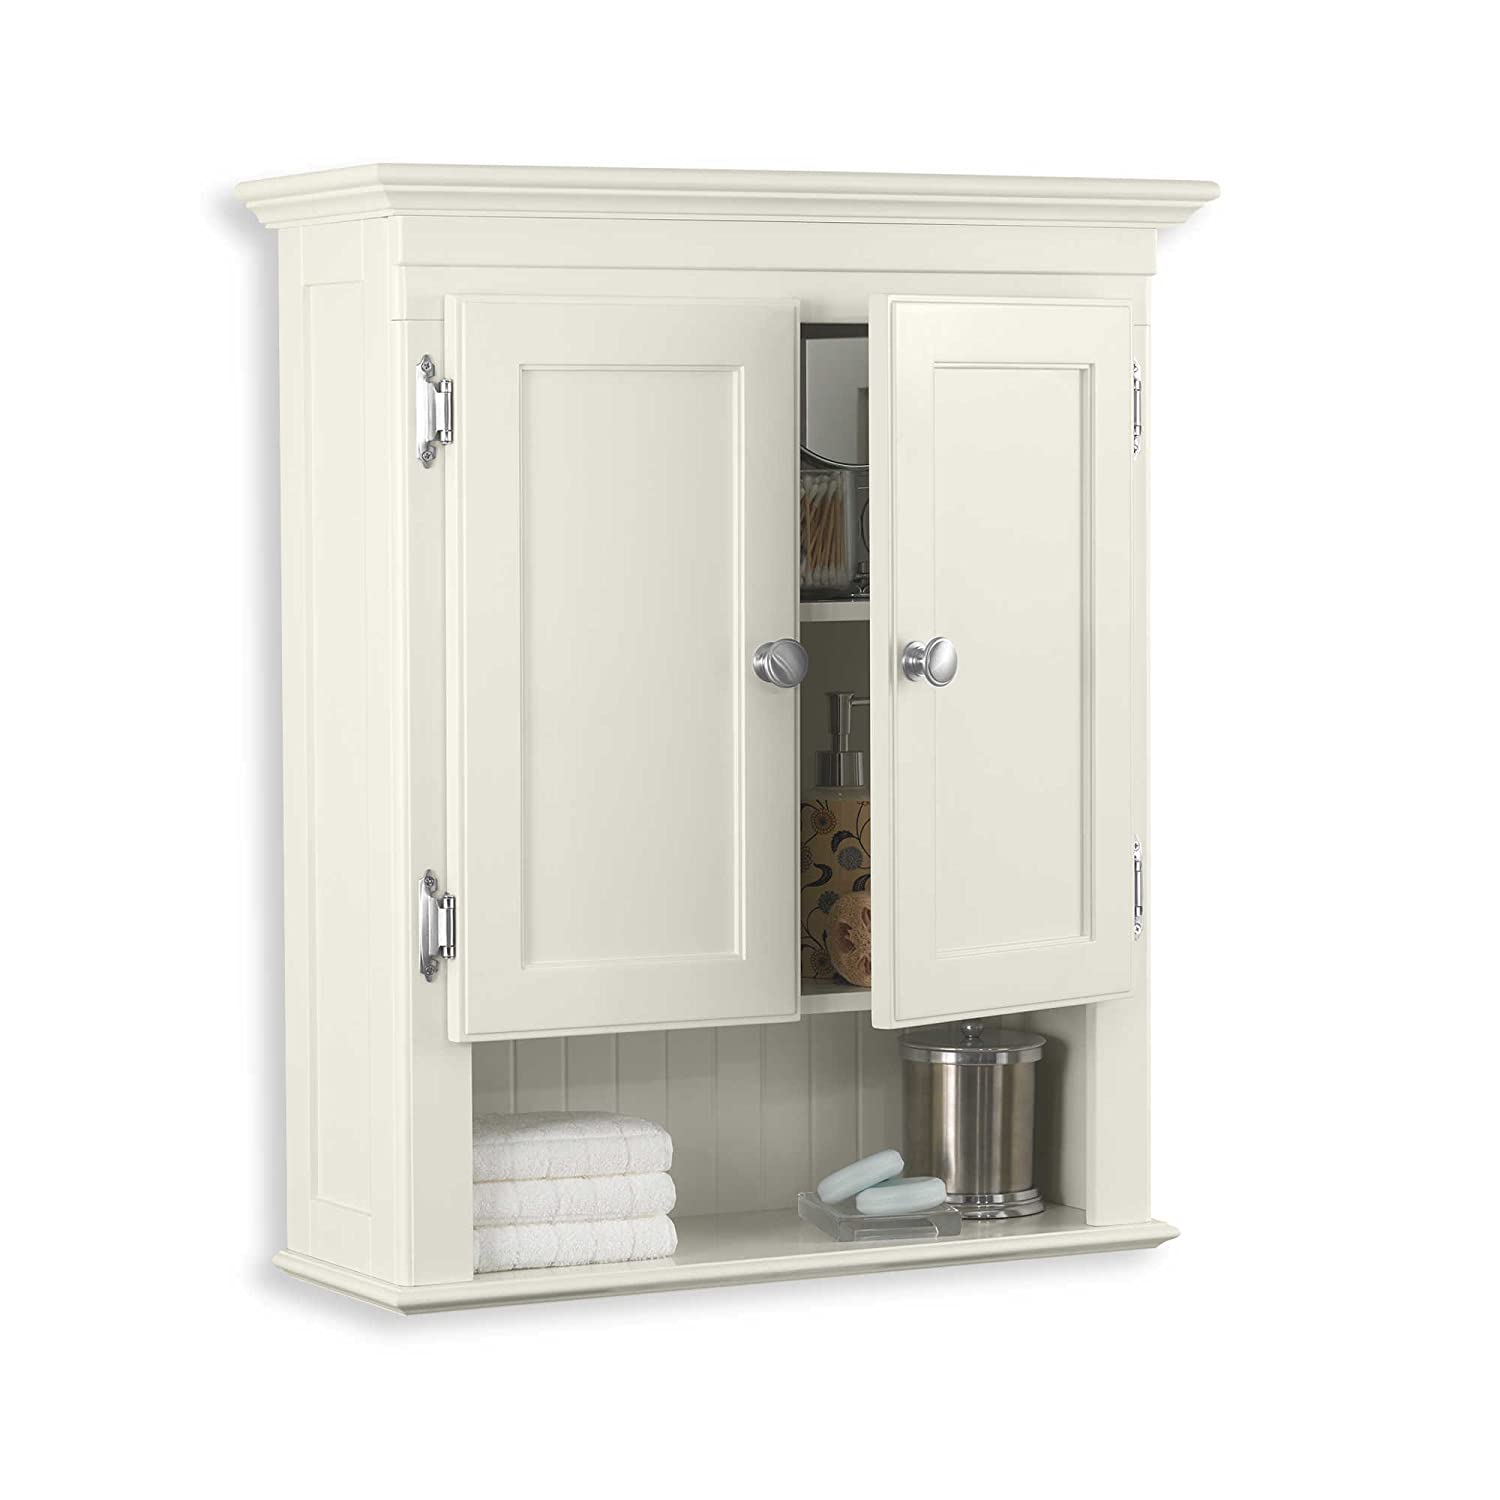 Amazon Fairmont Bathroom Wall Cabinet Ivory White Kitchen